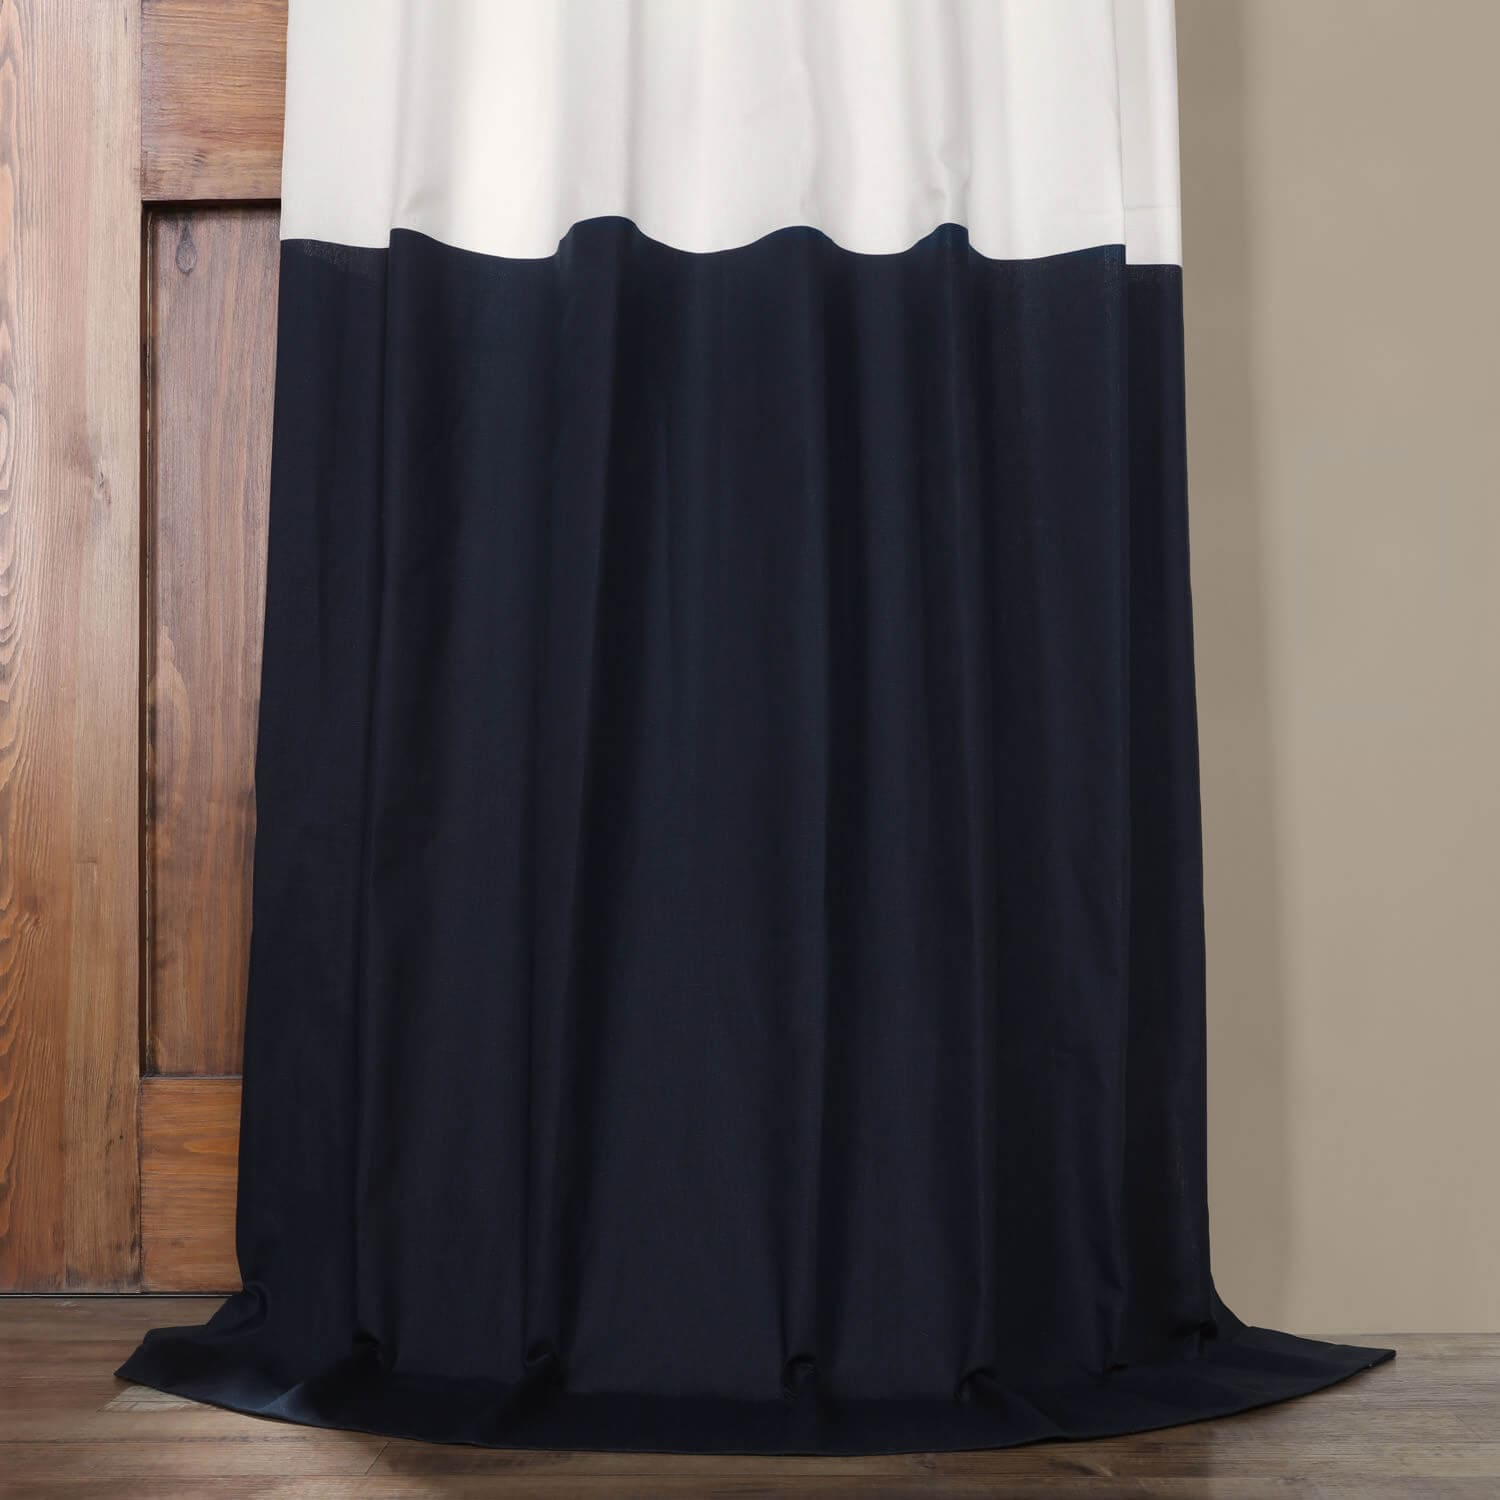 Fresh Popcorn and Polo Navy Horizontal Colorblock Panama Curtain